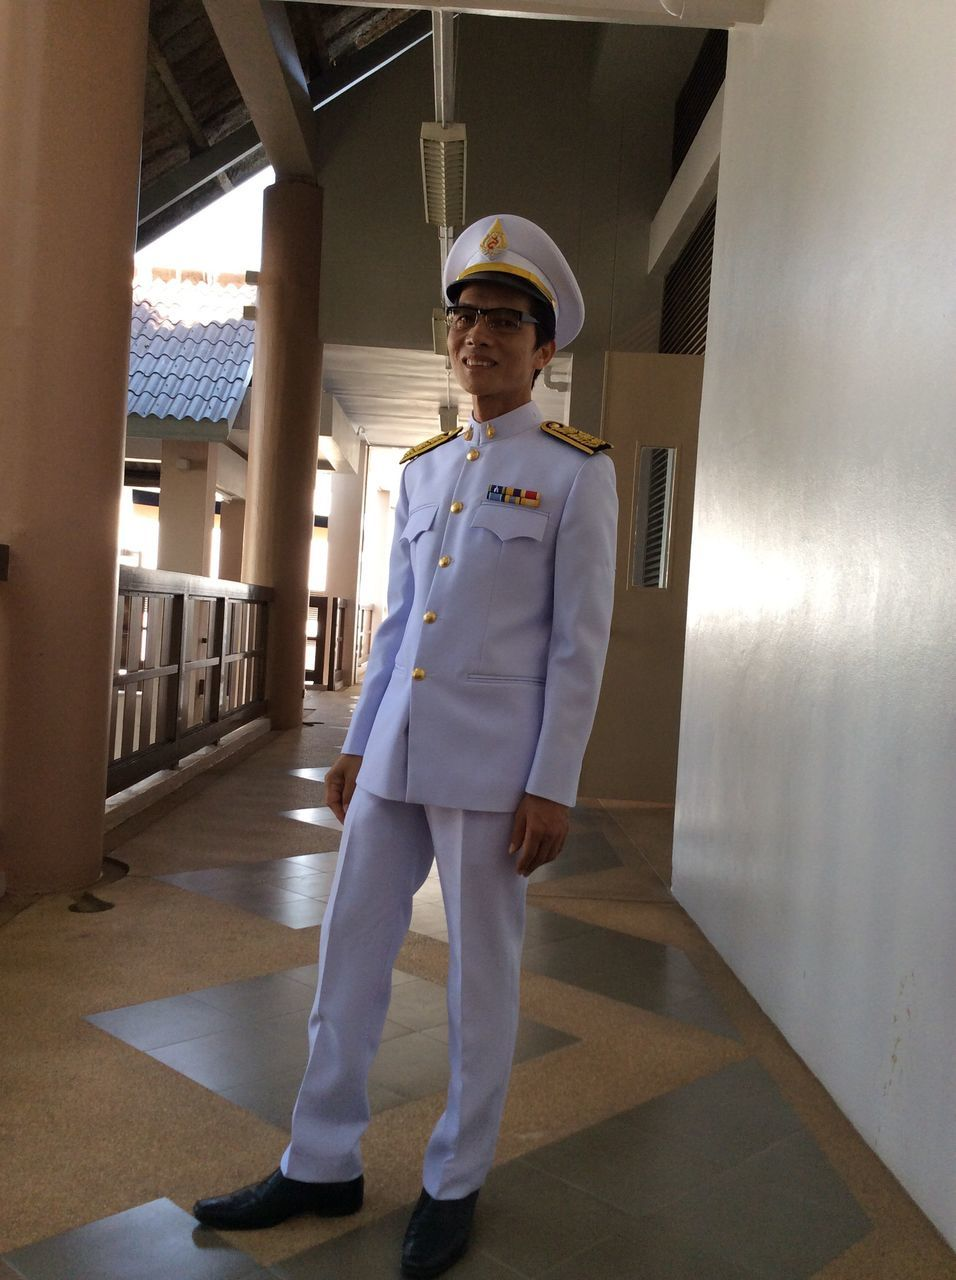 young adult, one person, standing, real people, looking at camera, uniform, full length, portrait, indoors, young men, front view, leisure activity, lifestyles, day, architecture